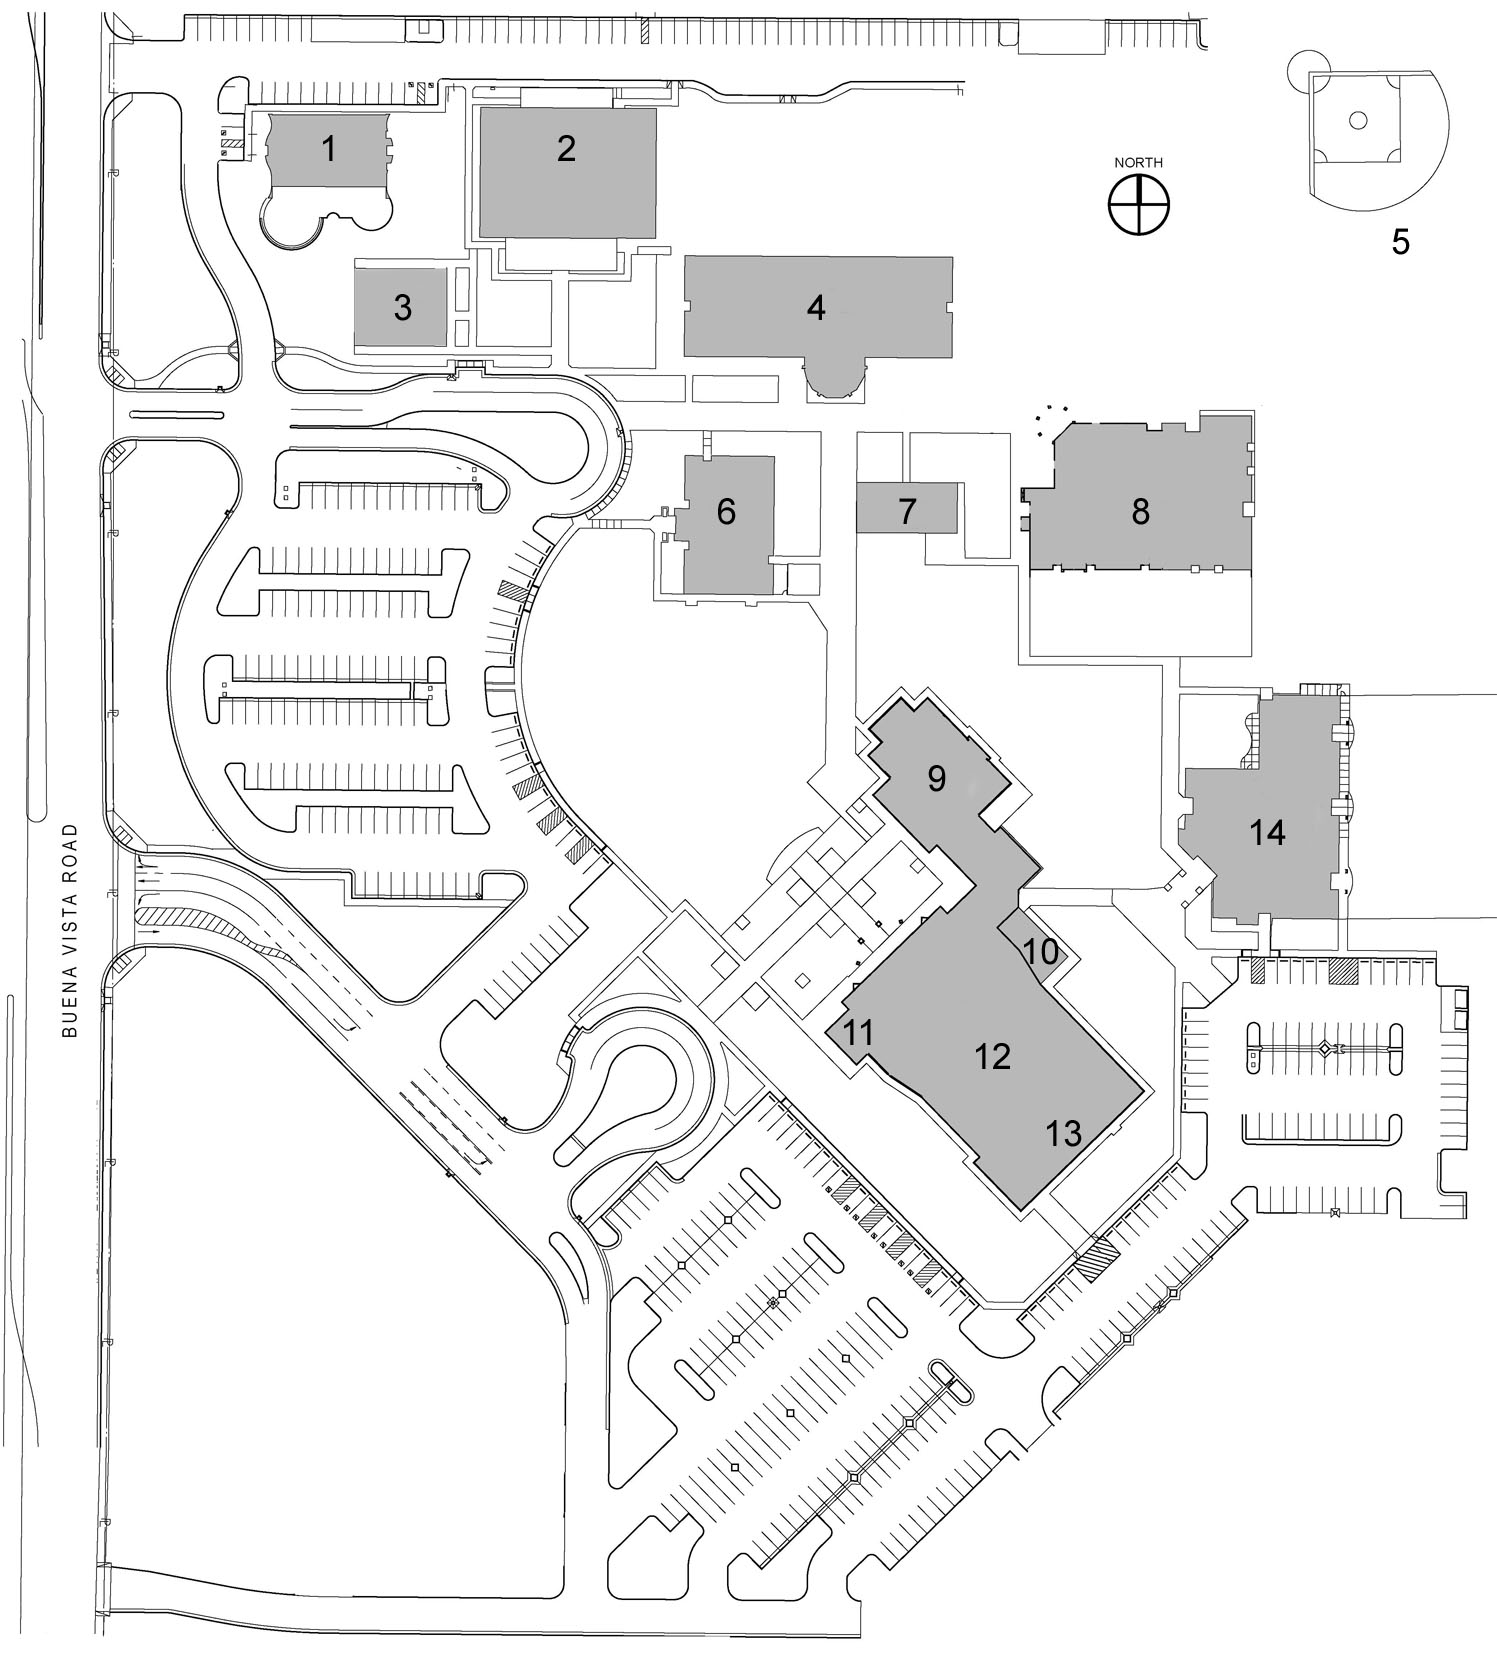 SJLC Site Plan_101612_numbered